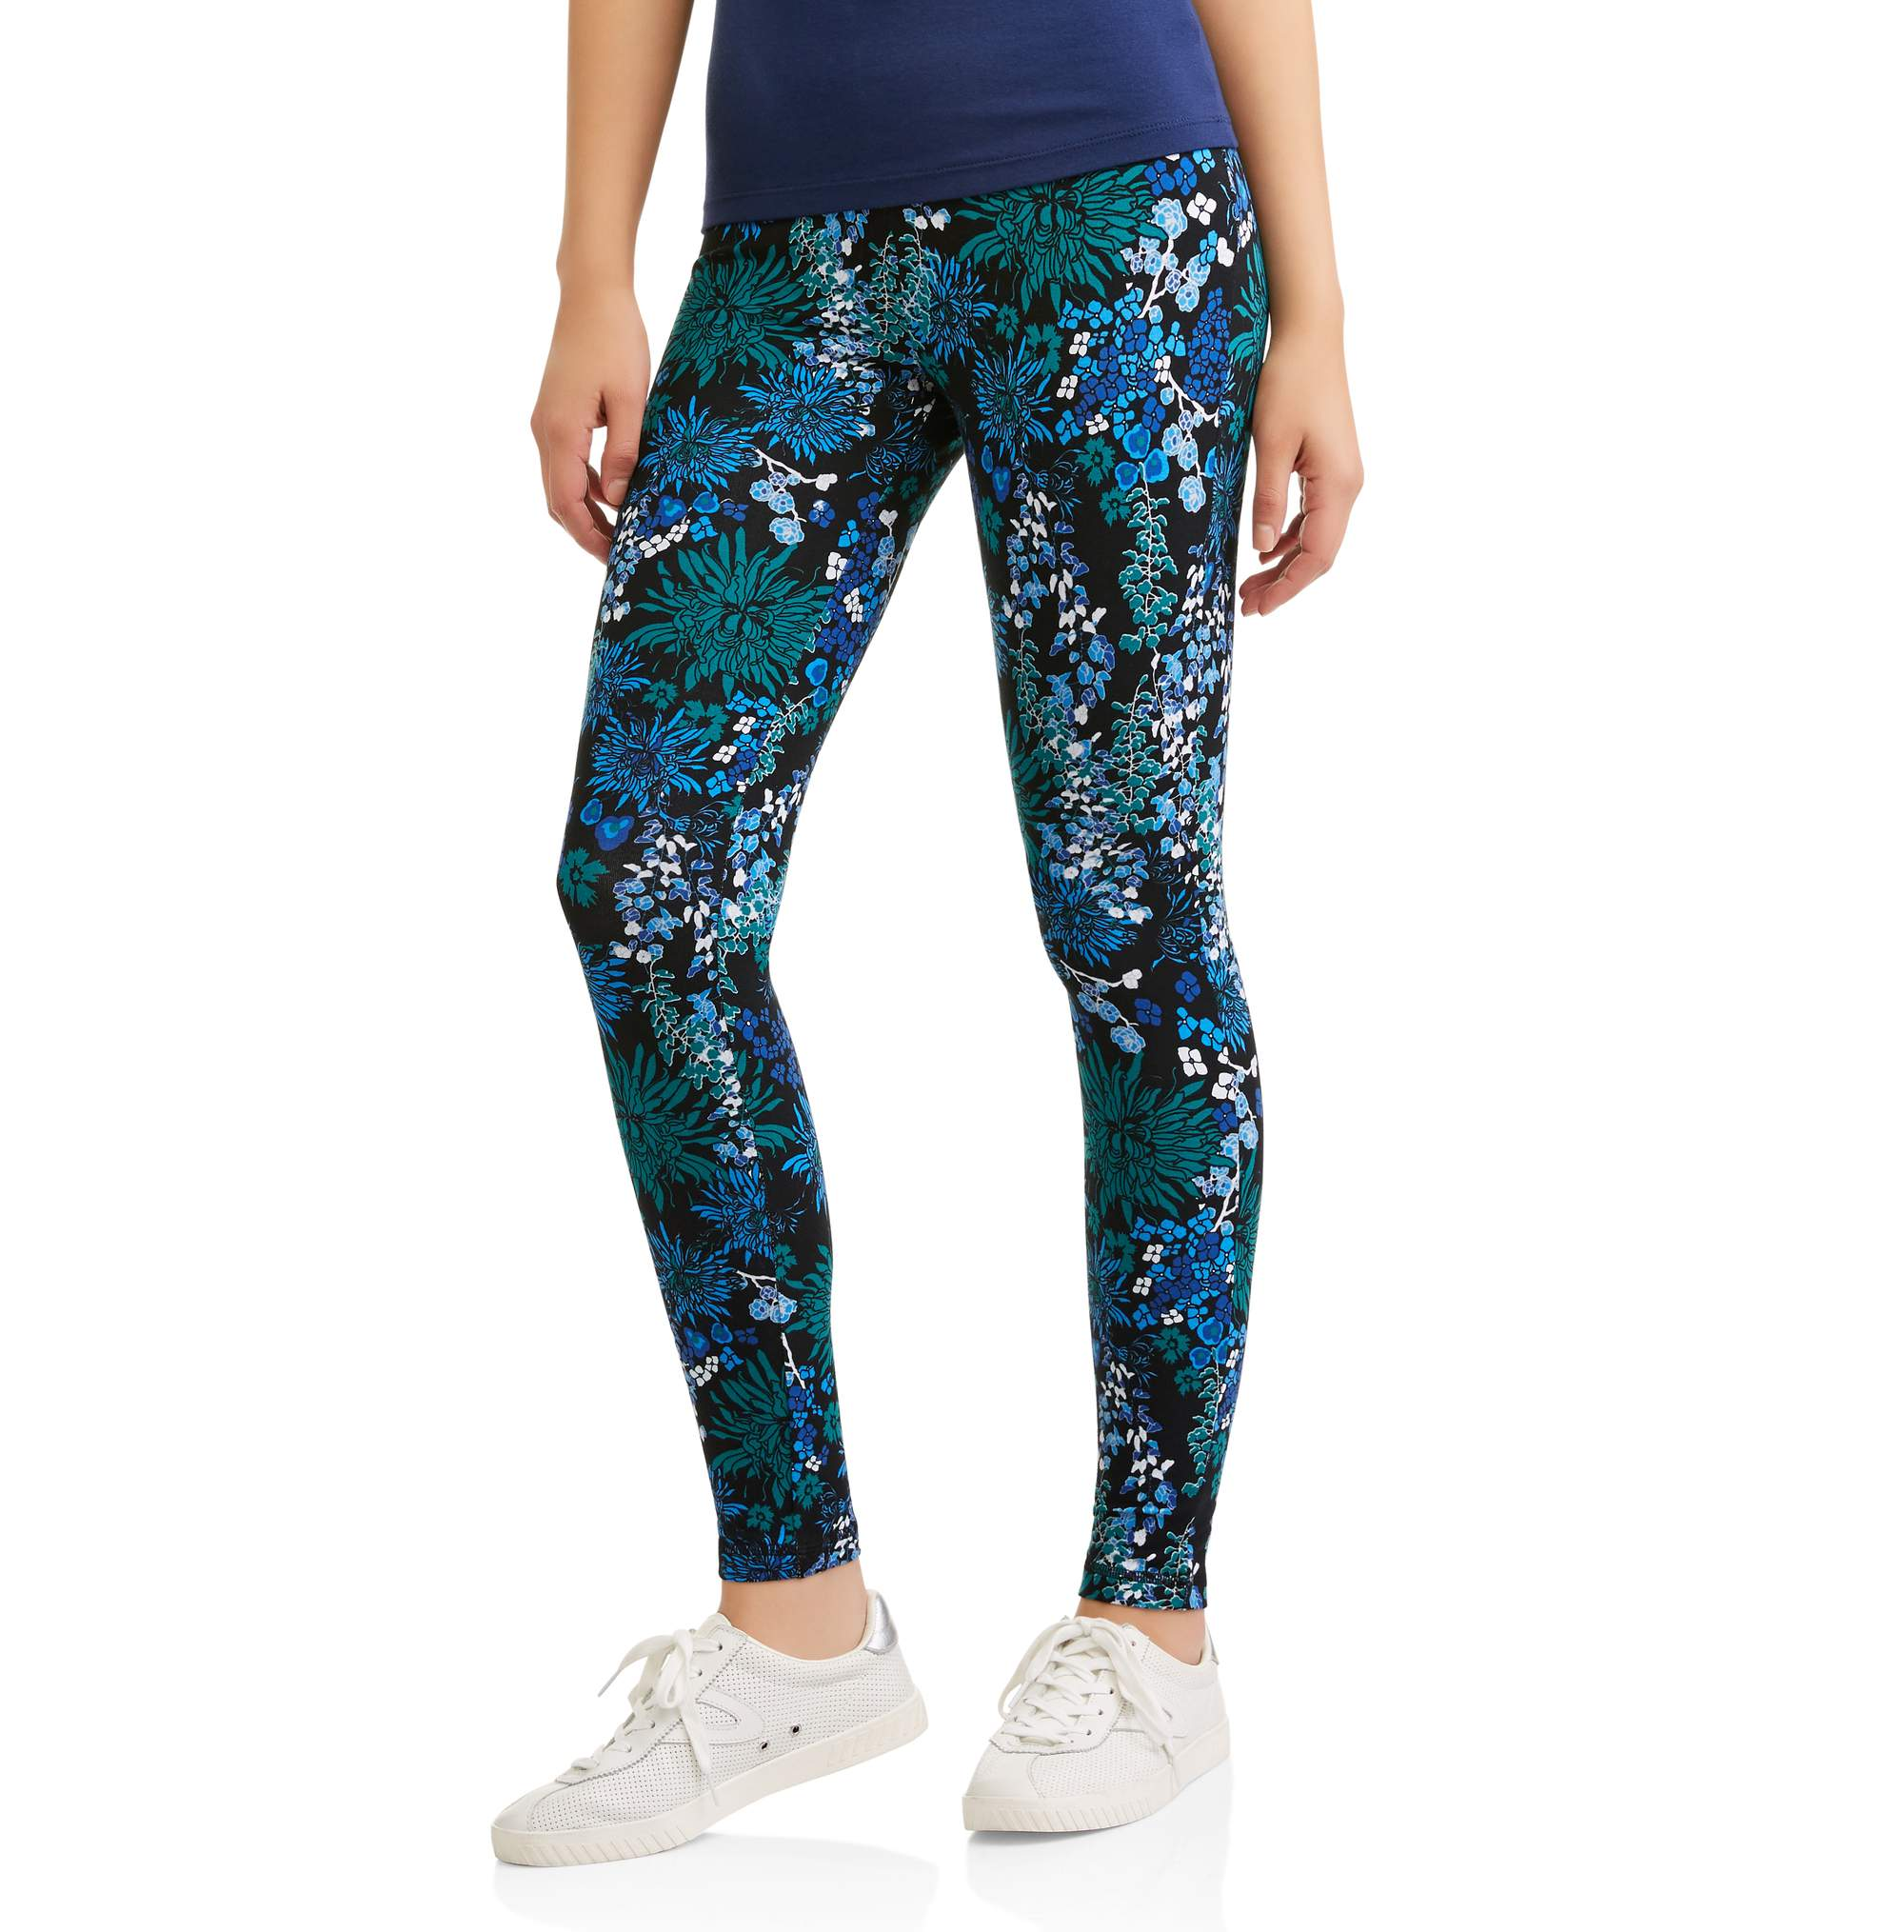 Danskin Now Women's Active Allover Floral Print Capri Legging